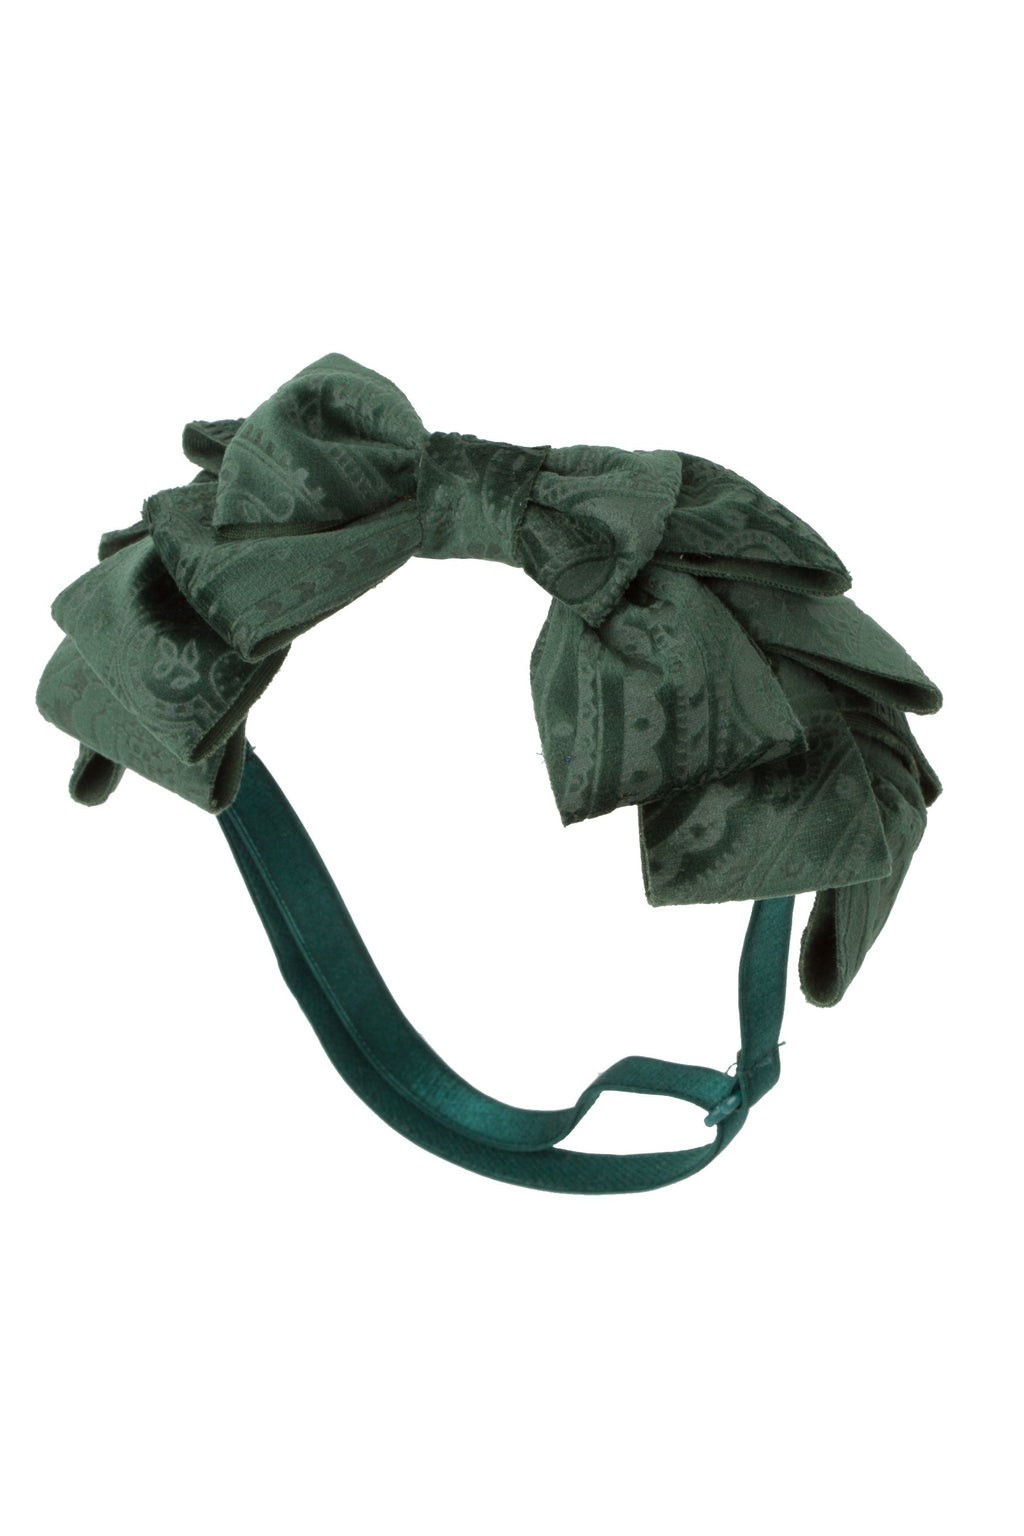 Pleated Ribbon Wrap - Hunter Green Paisley Suede - PROJECT 6, modest fashion